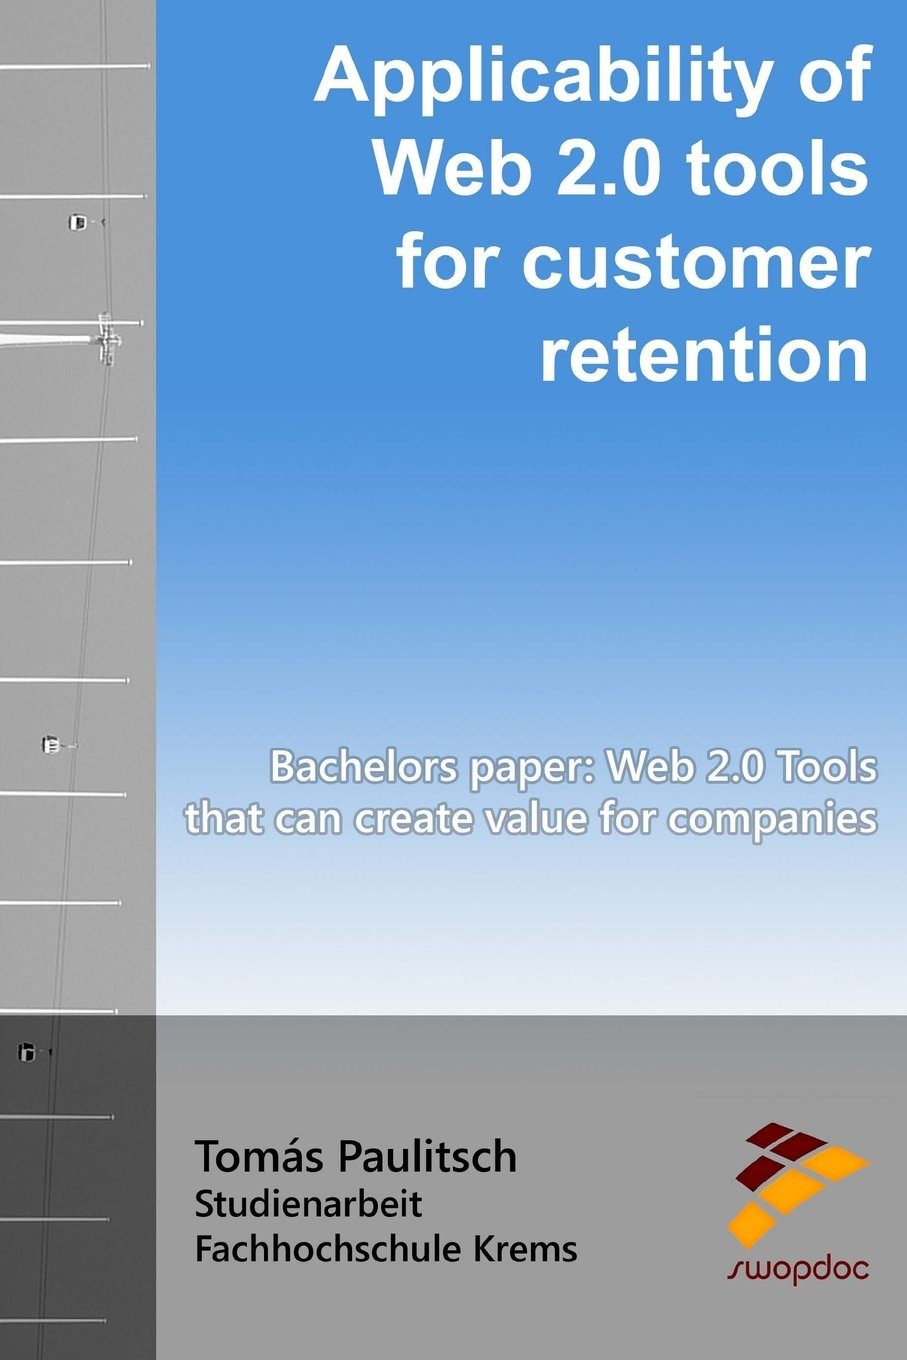 Applicability of Web 2.0 tools for customer retention: BACHELOR�S PAPER: Web 2.0 Tools that can create value for companies